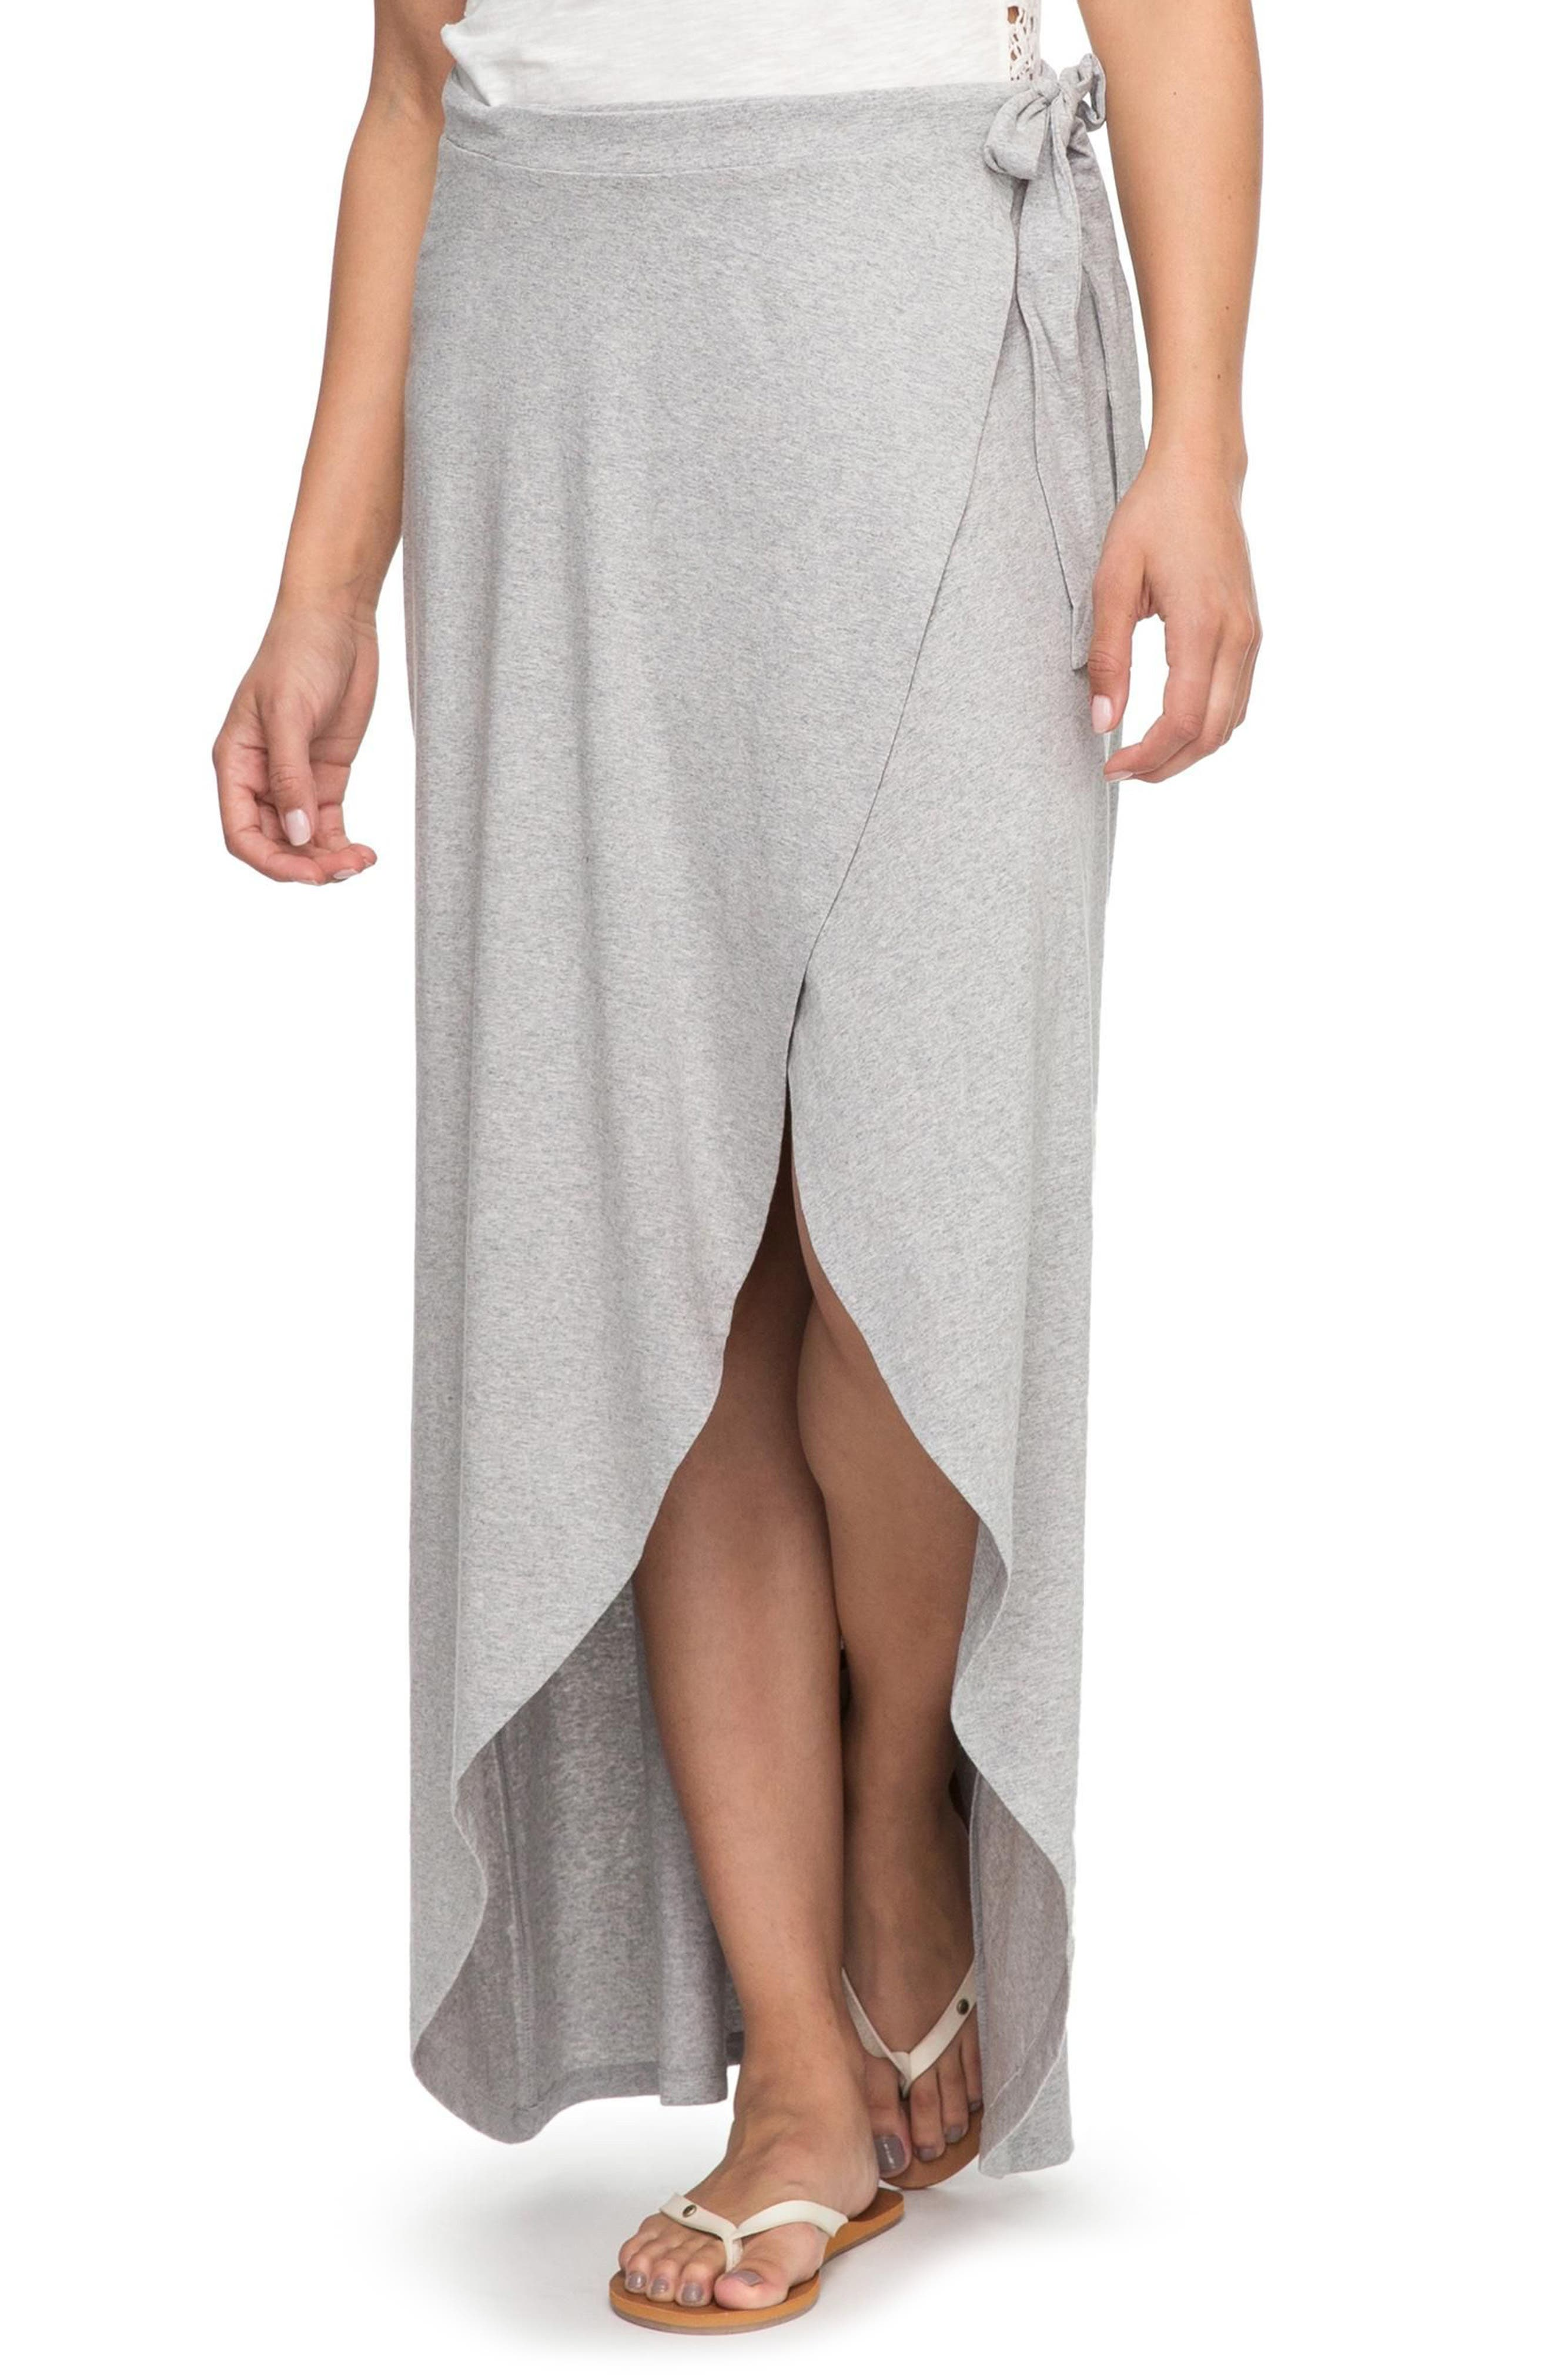 Everlasting Afternoon Long Wrap Skirt,                         Main,                         color,